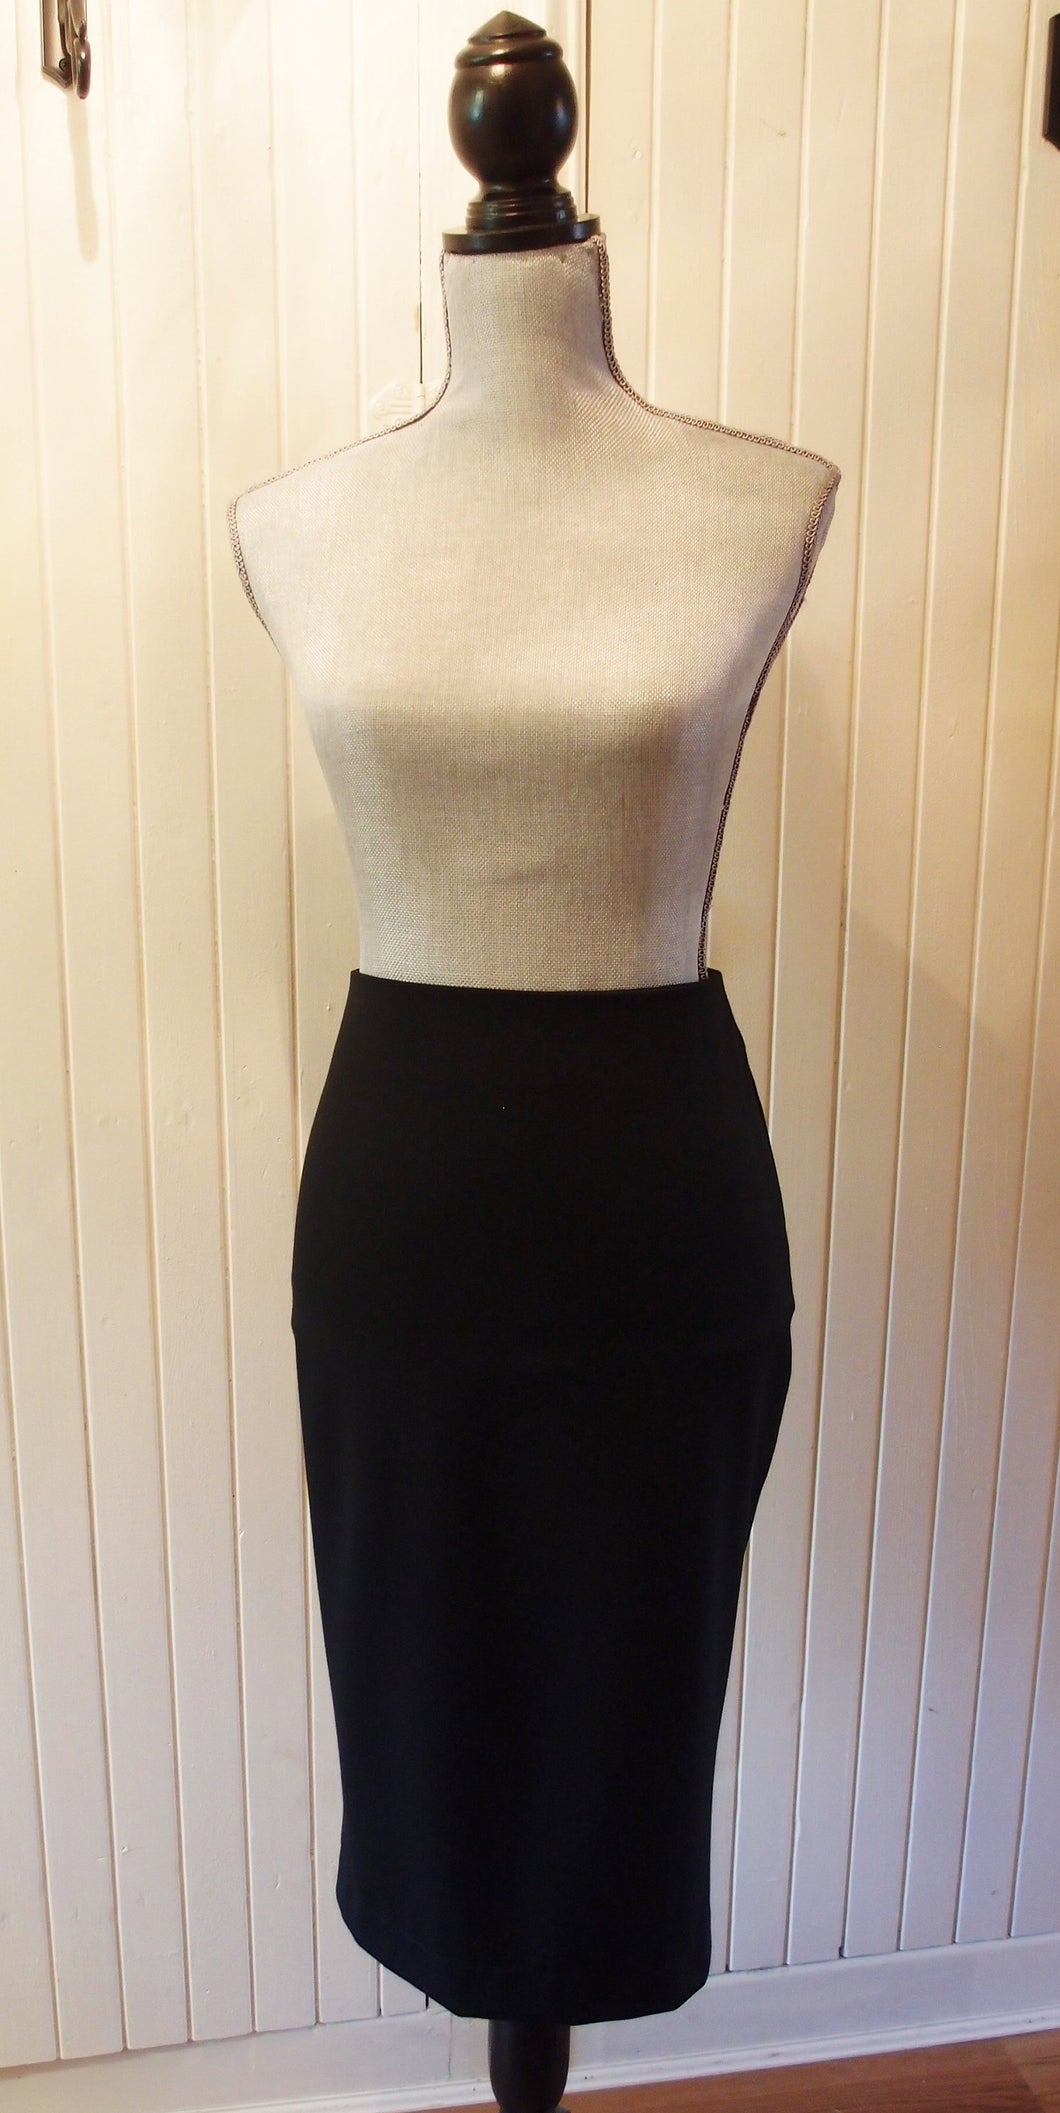 Pencil Skirt in 'Black' Stretch Woven